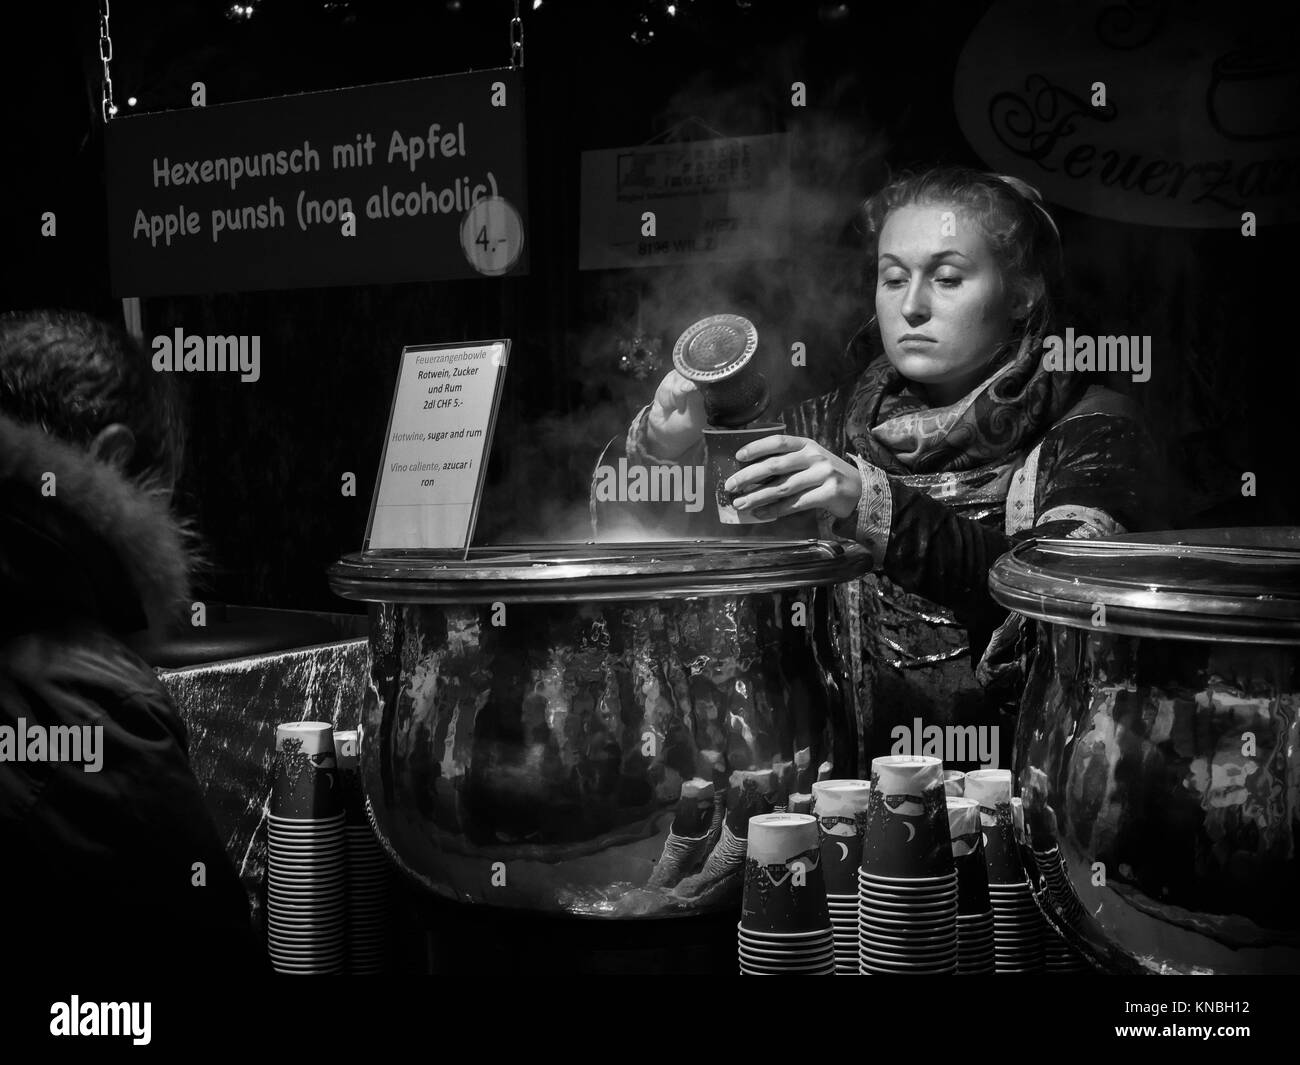 Serving punch at christmas market in Zurich, Switzerland. - Stock Image